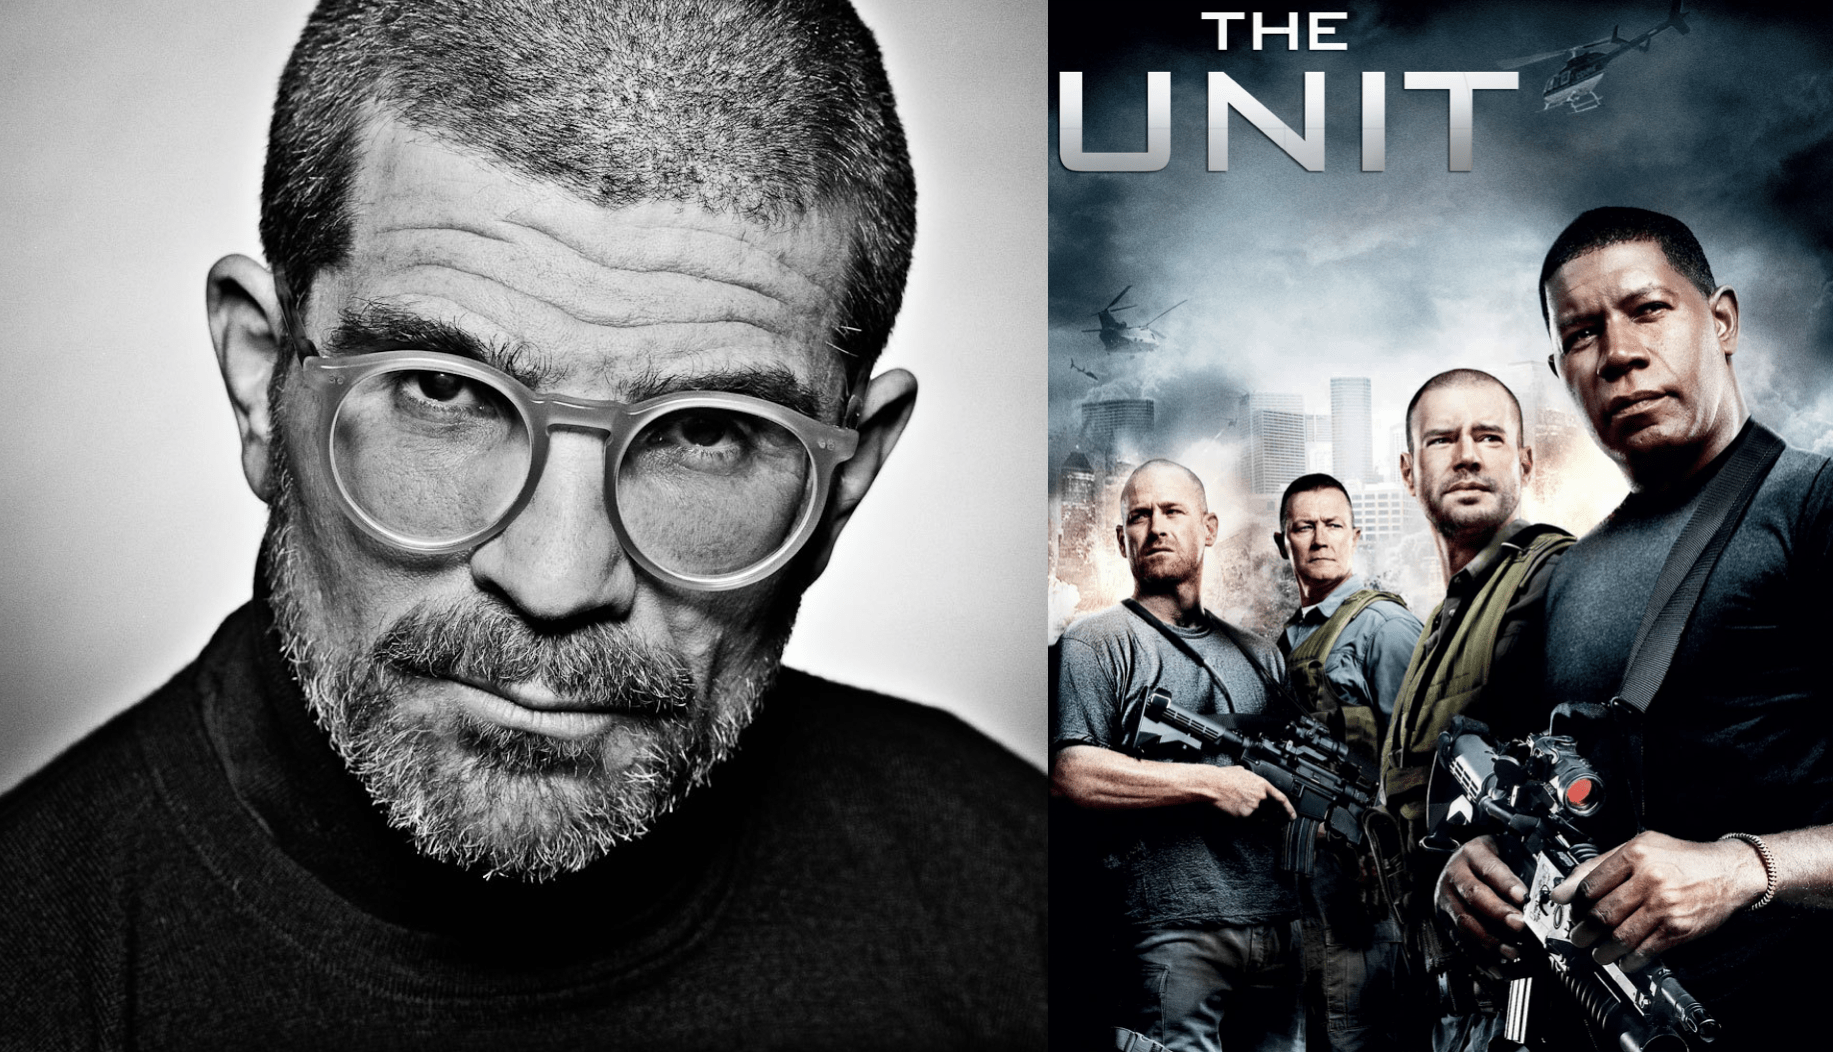 David Mamet - The Unit - thescriptblog.com